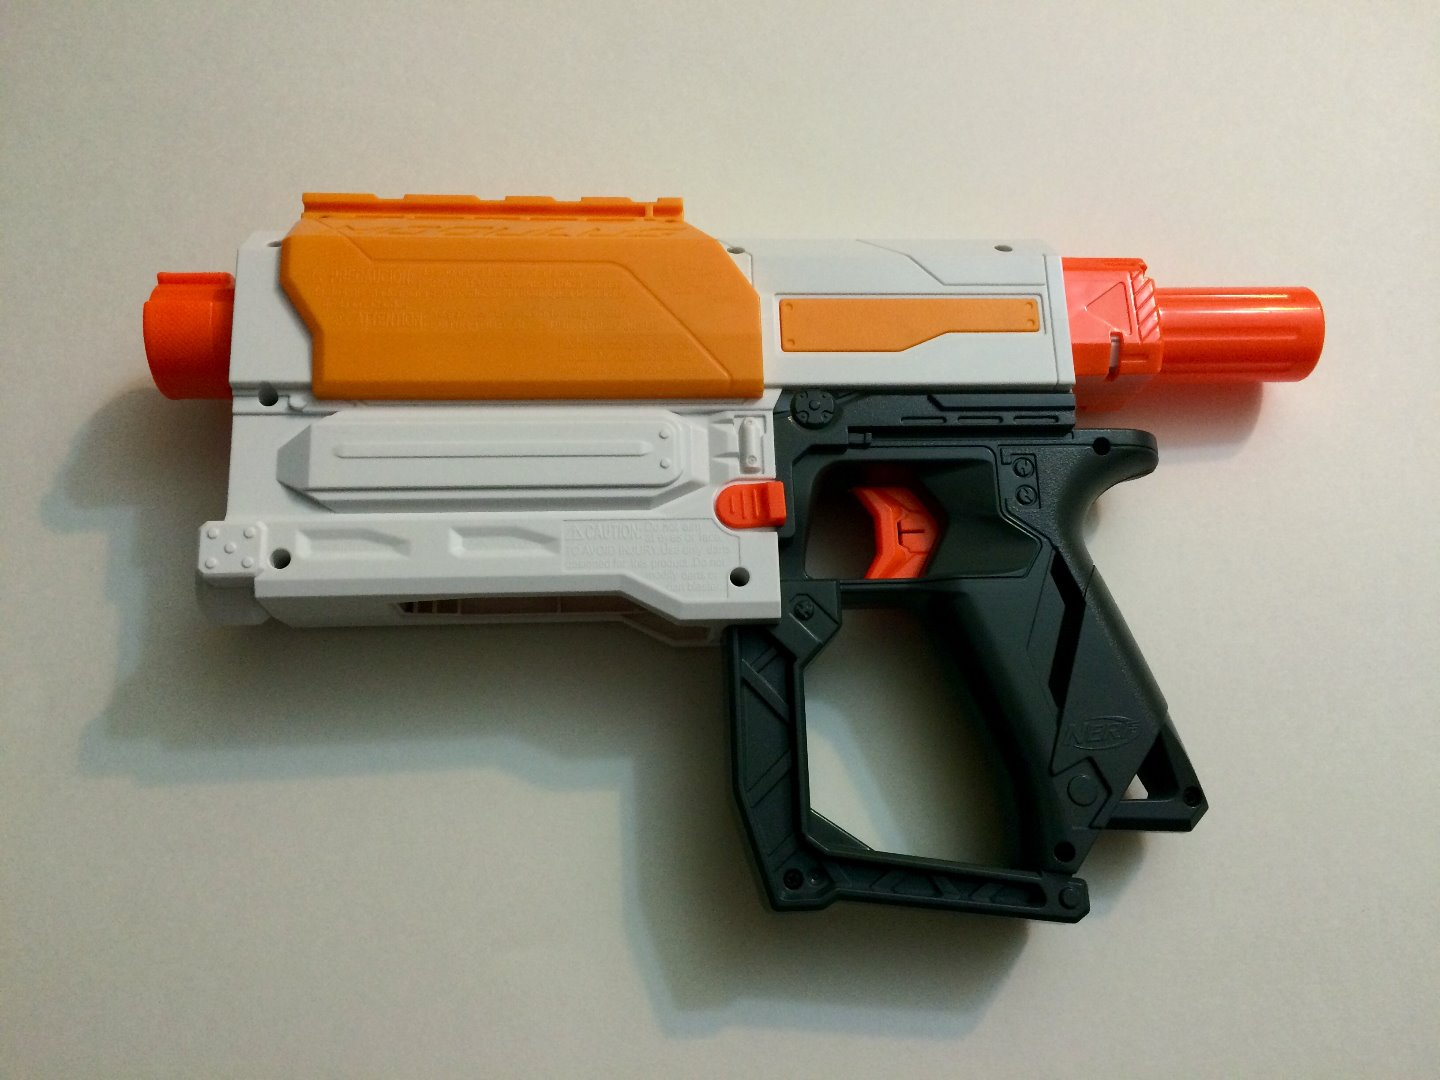 Picture of Opening the Blaster